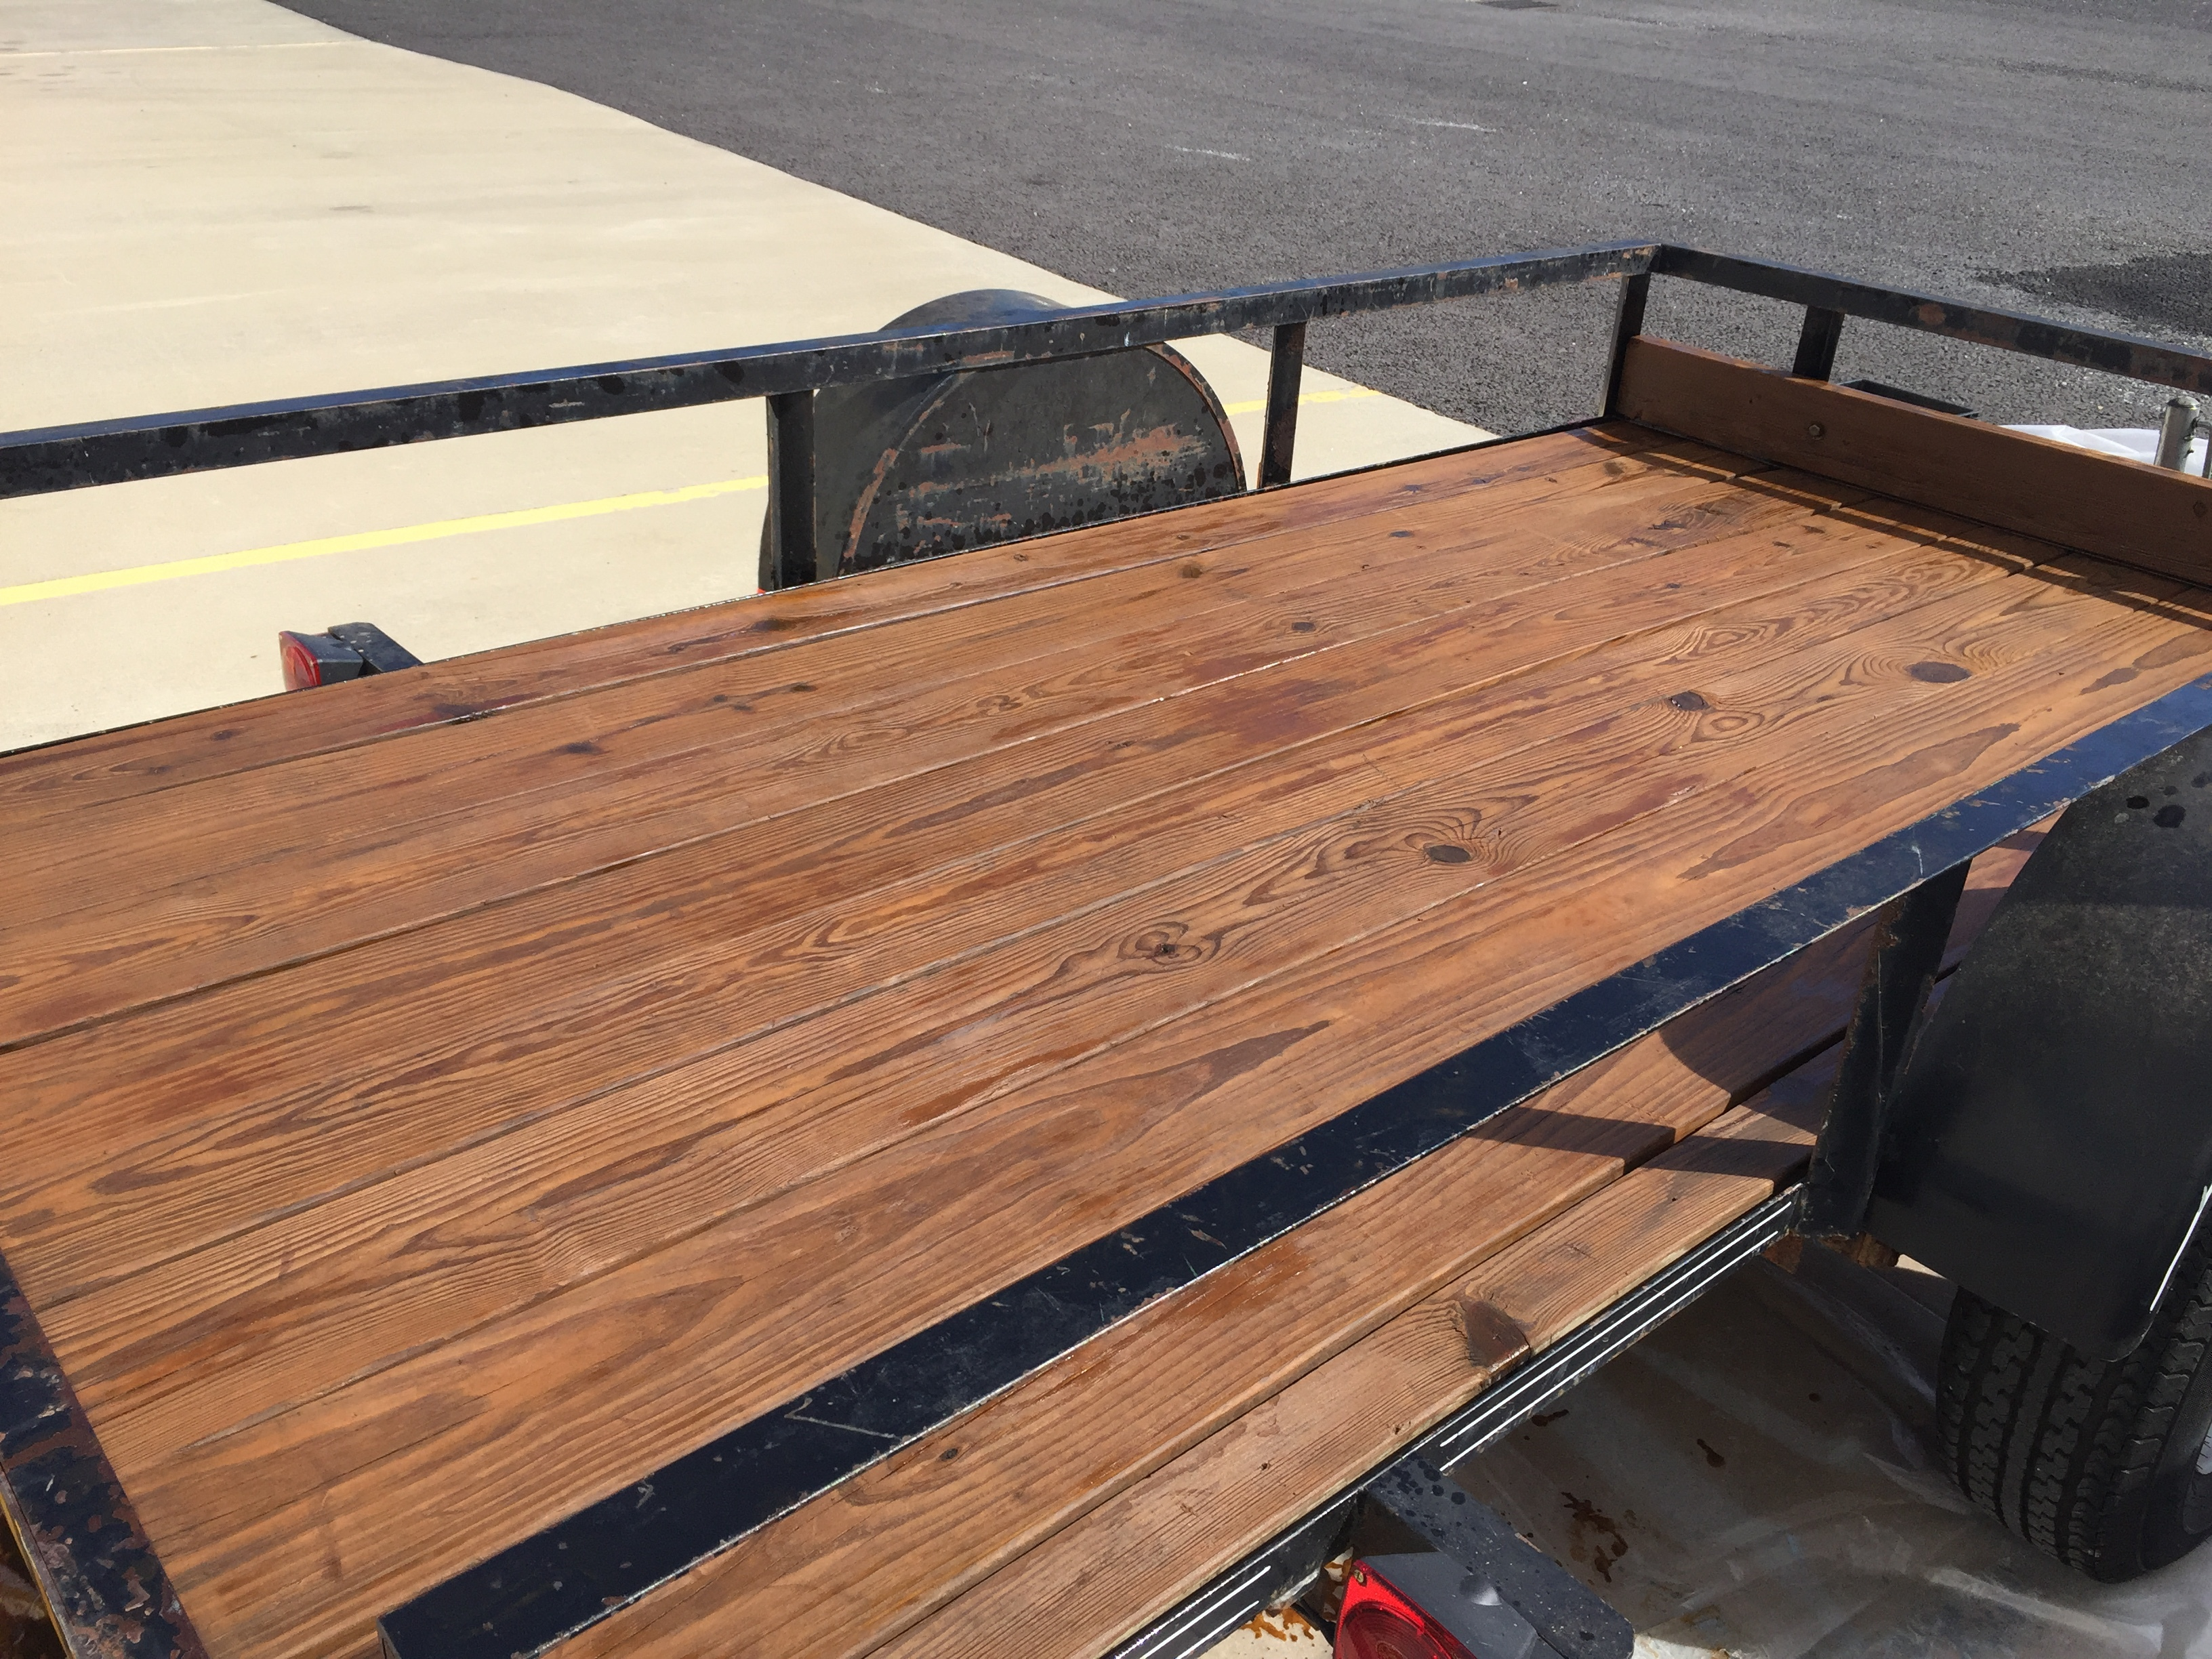 New boards on trailer: stain, paint, or something better